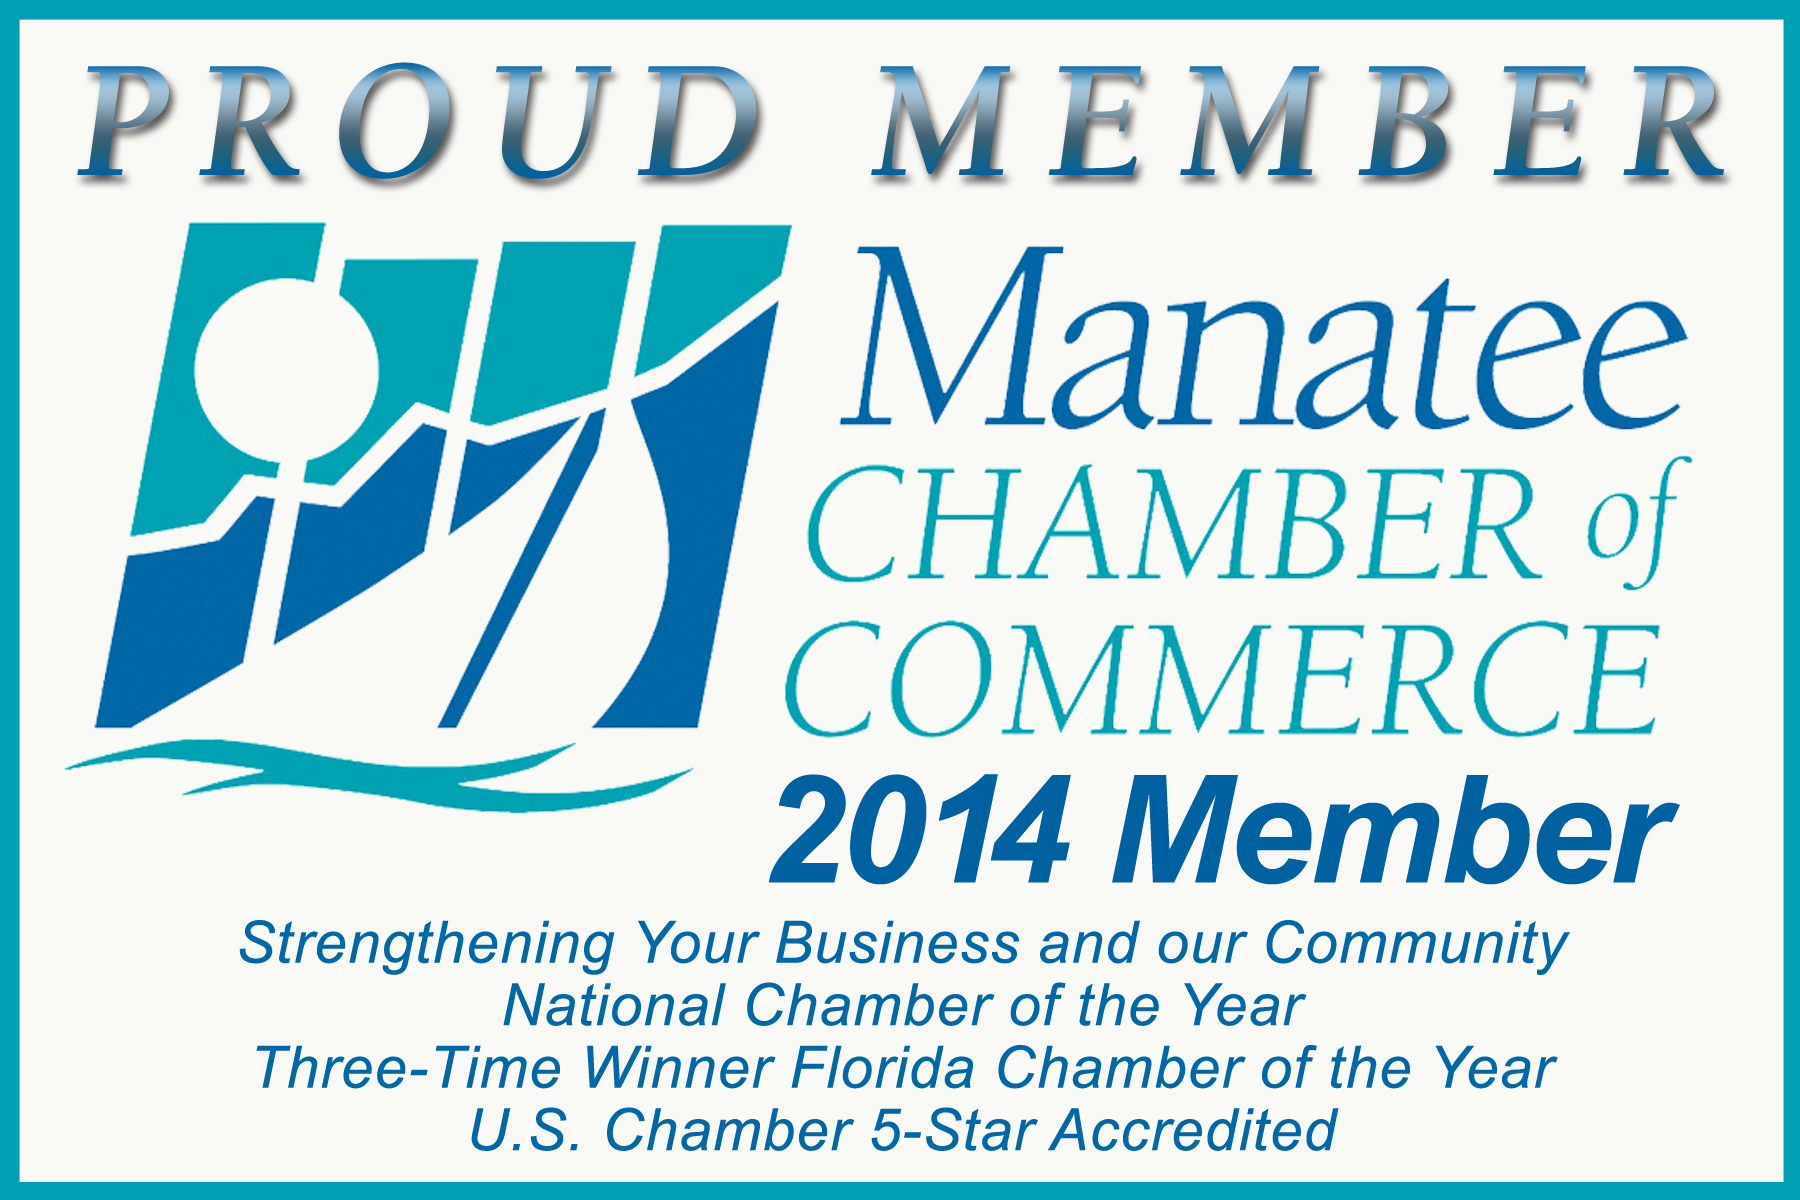 Manatee Chamber of Commerce member